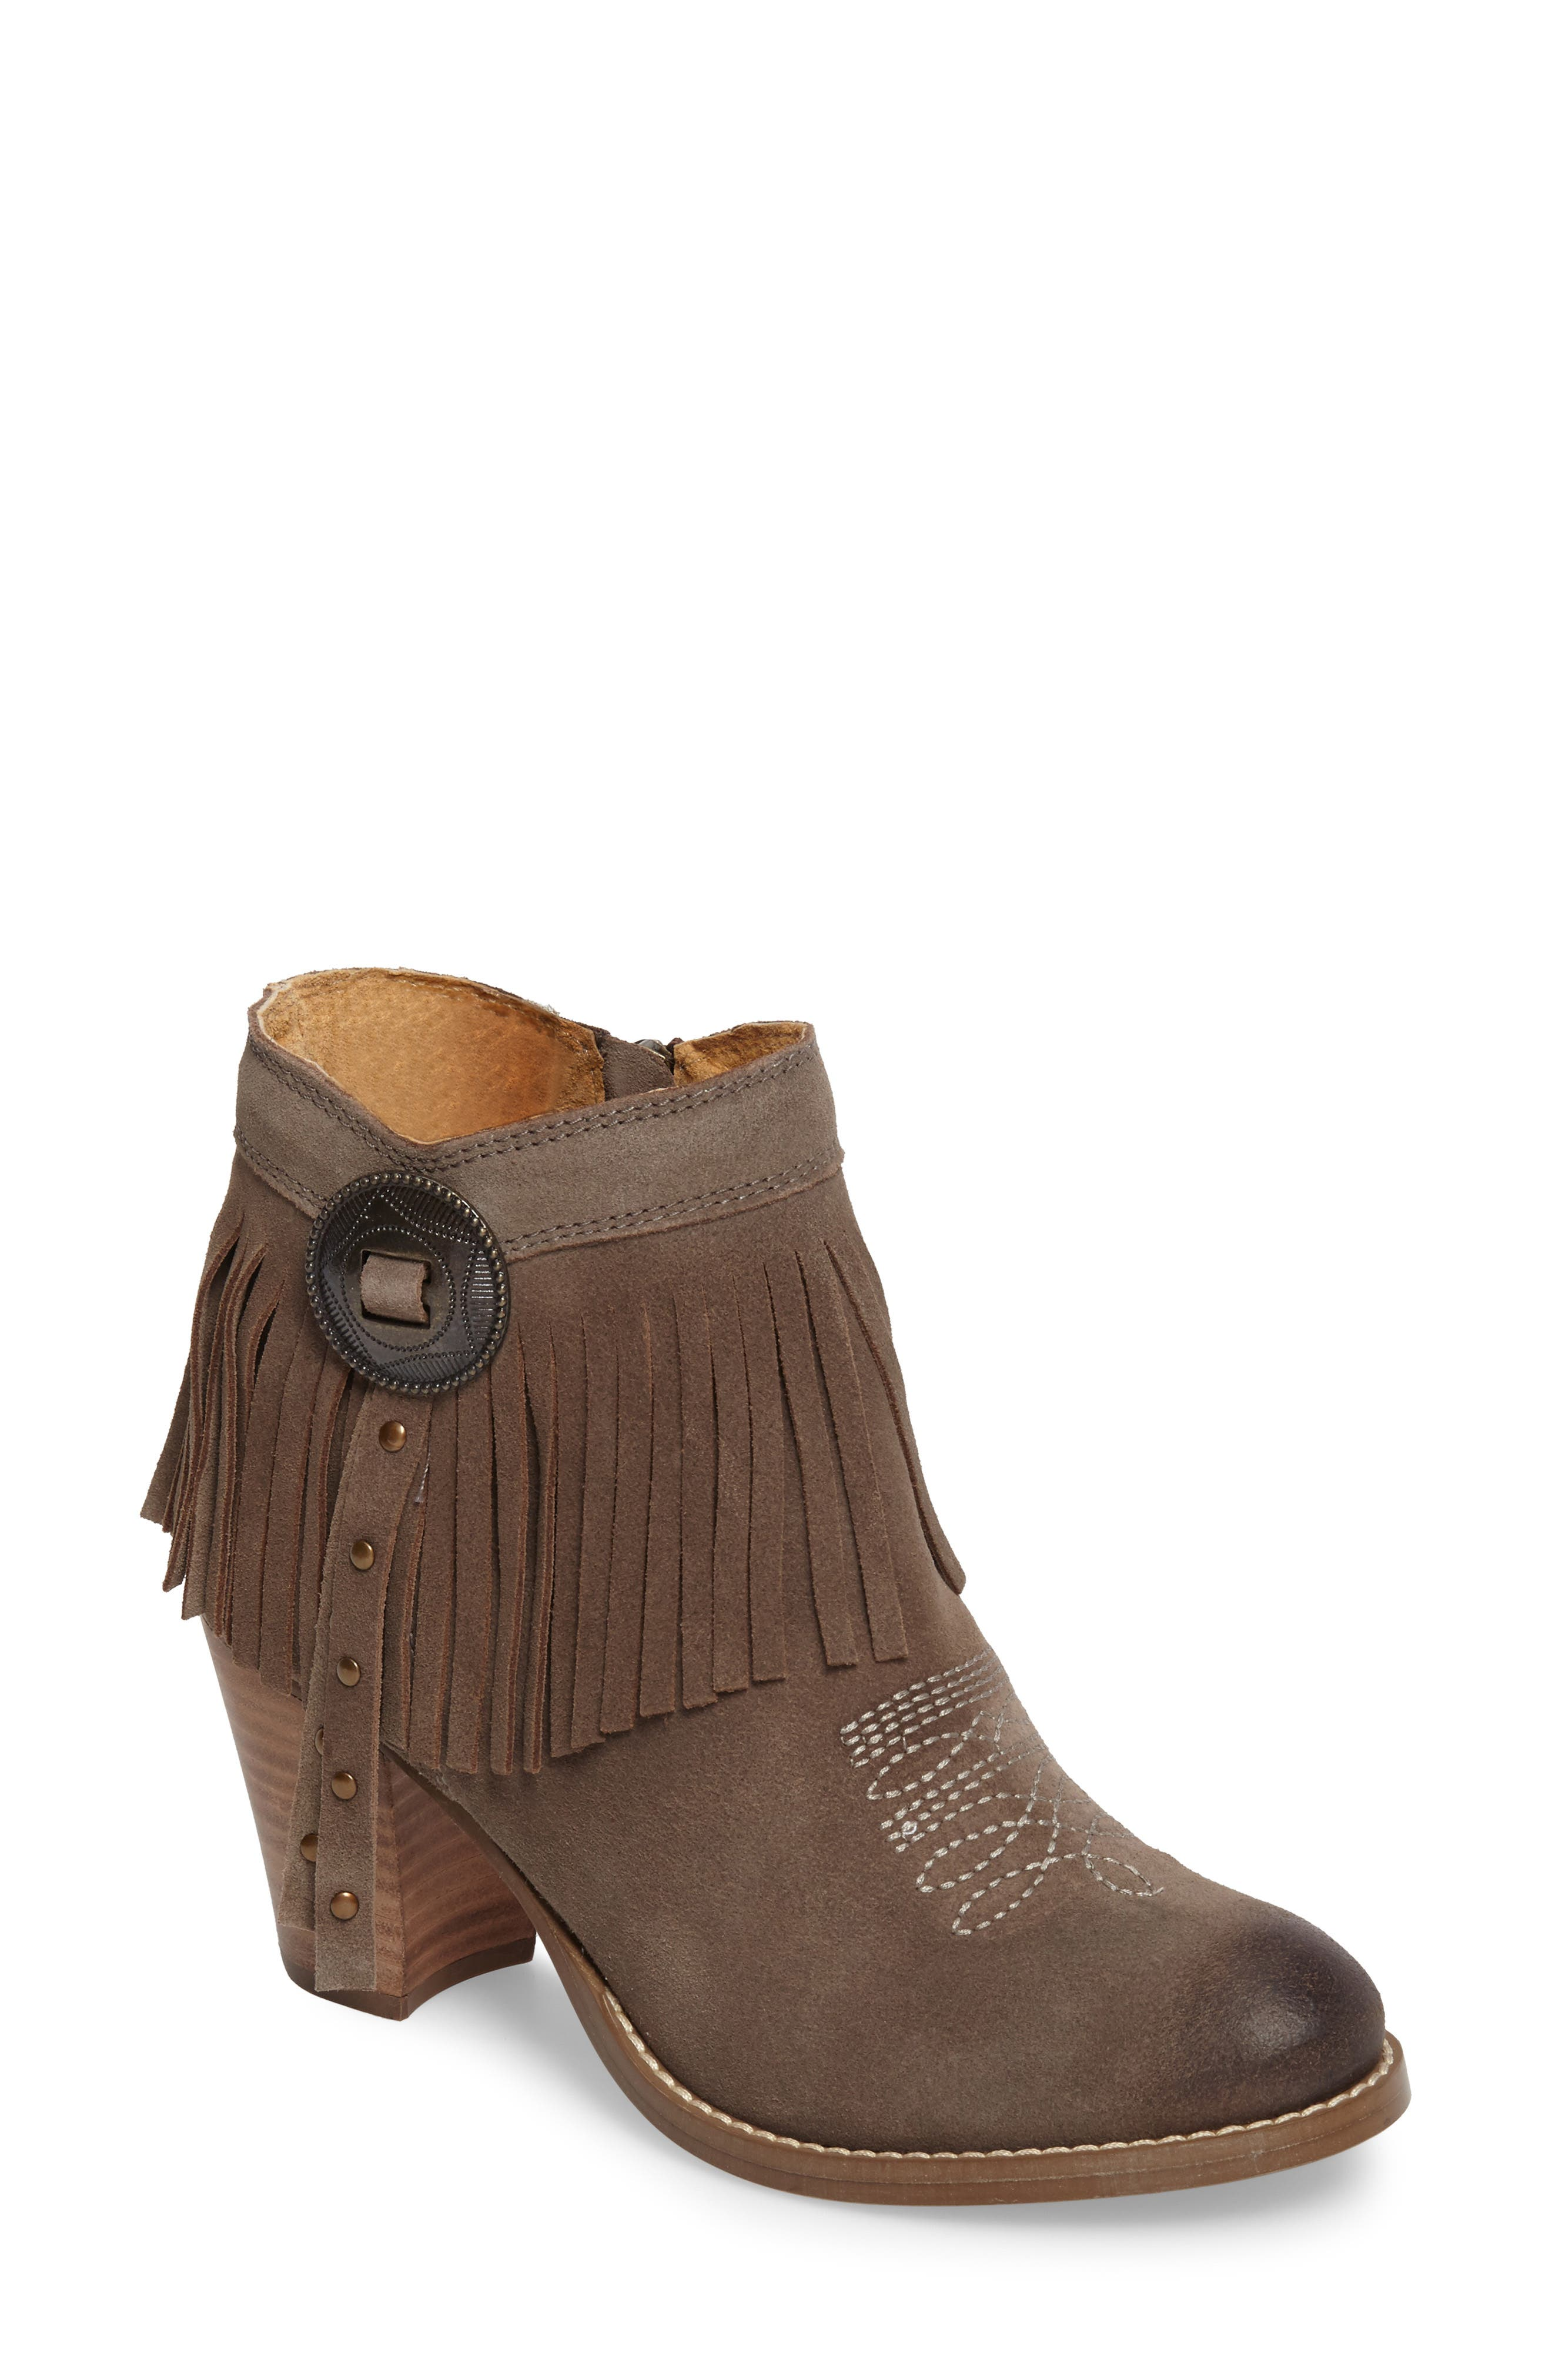 Unbridled Avery Bootie,                             Main thumbnail 1, color,                             200